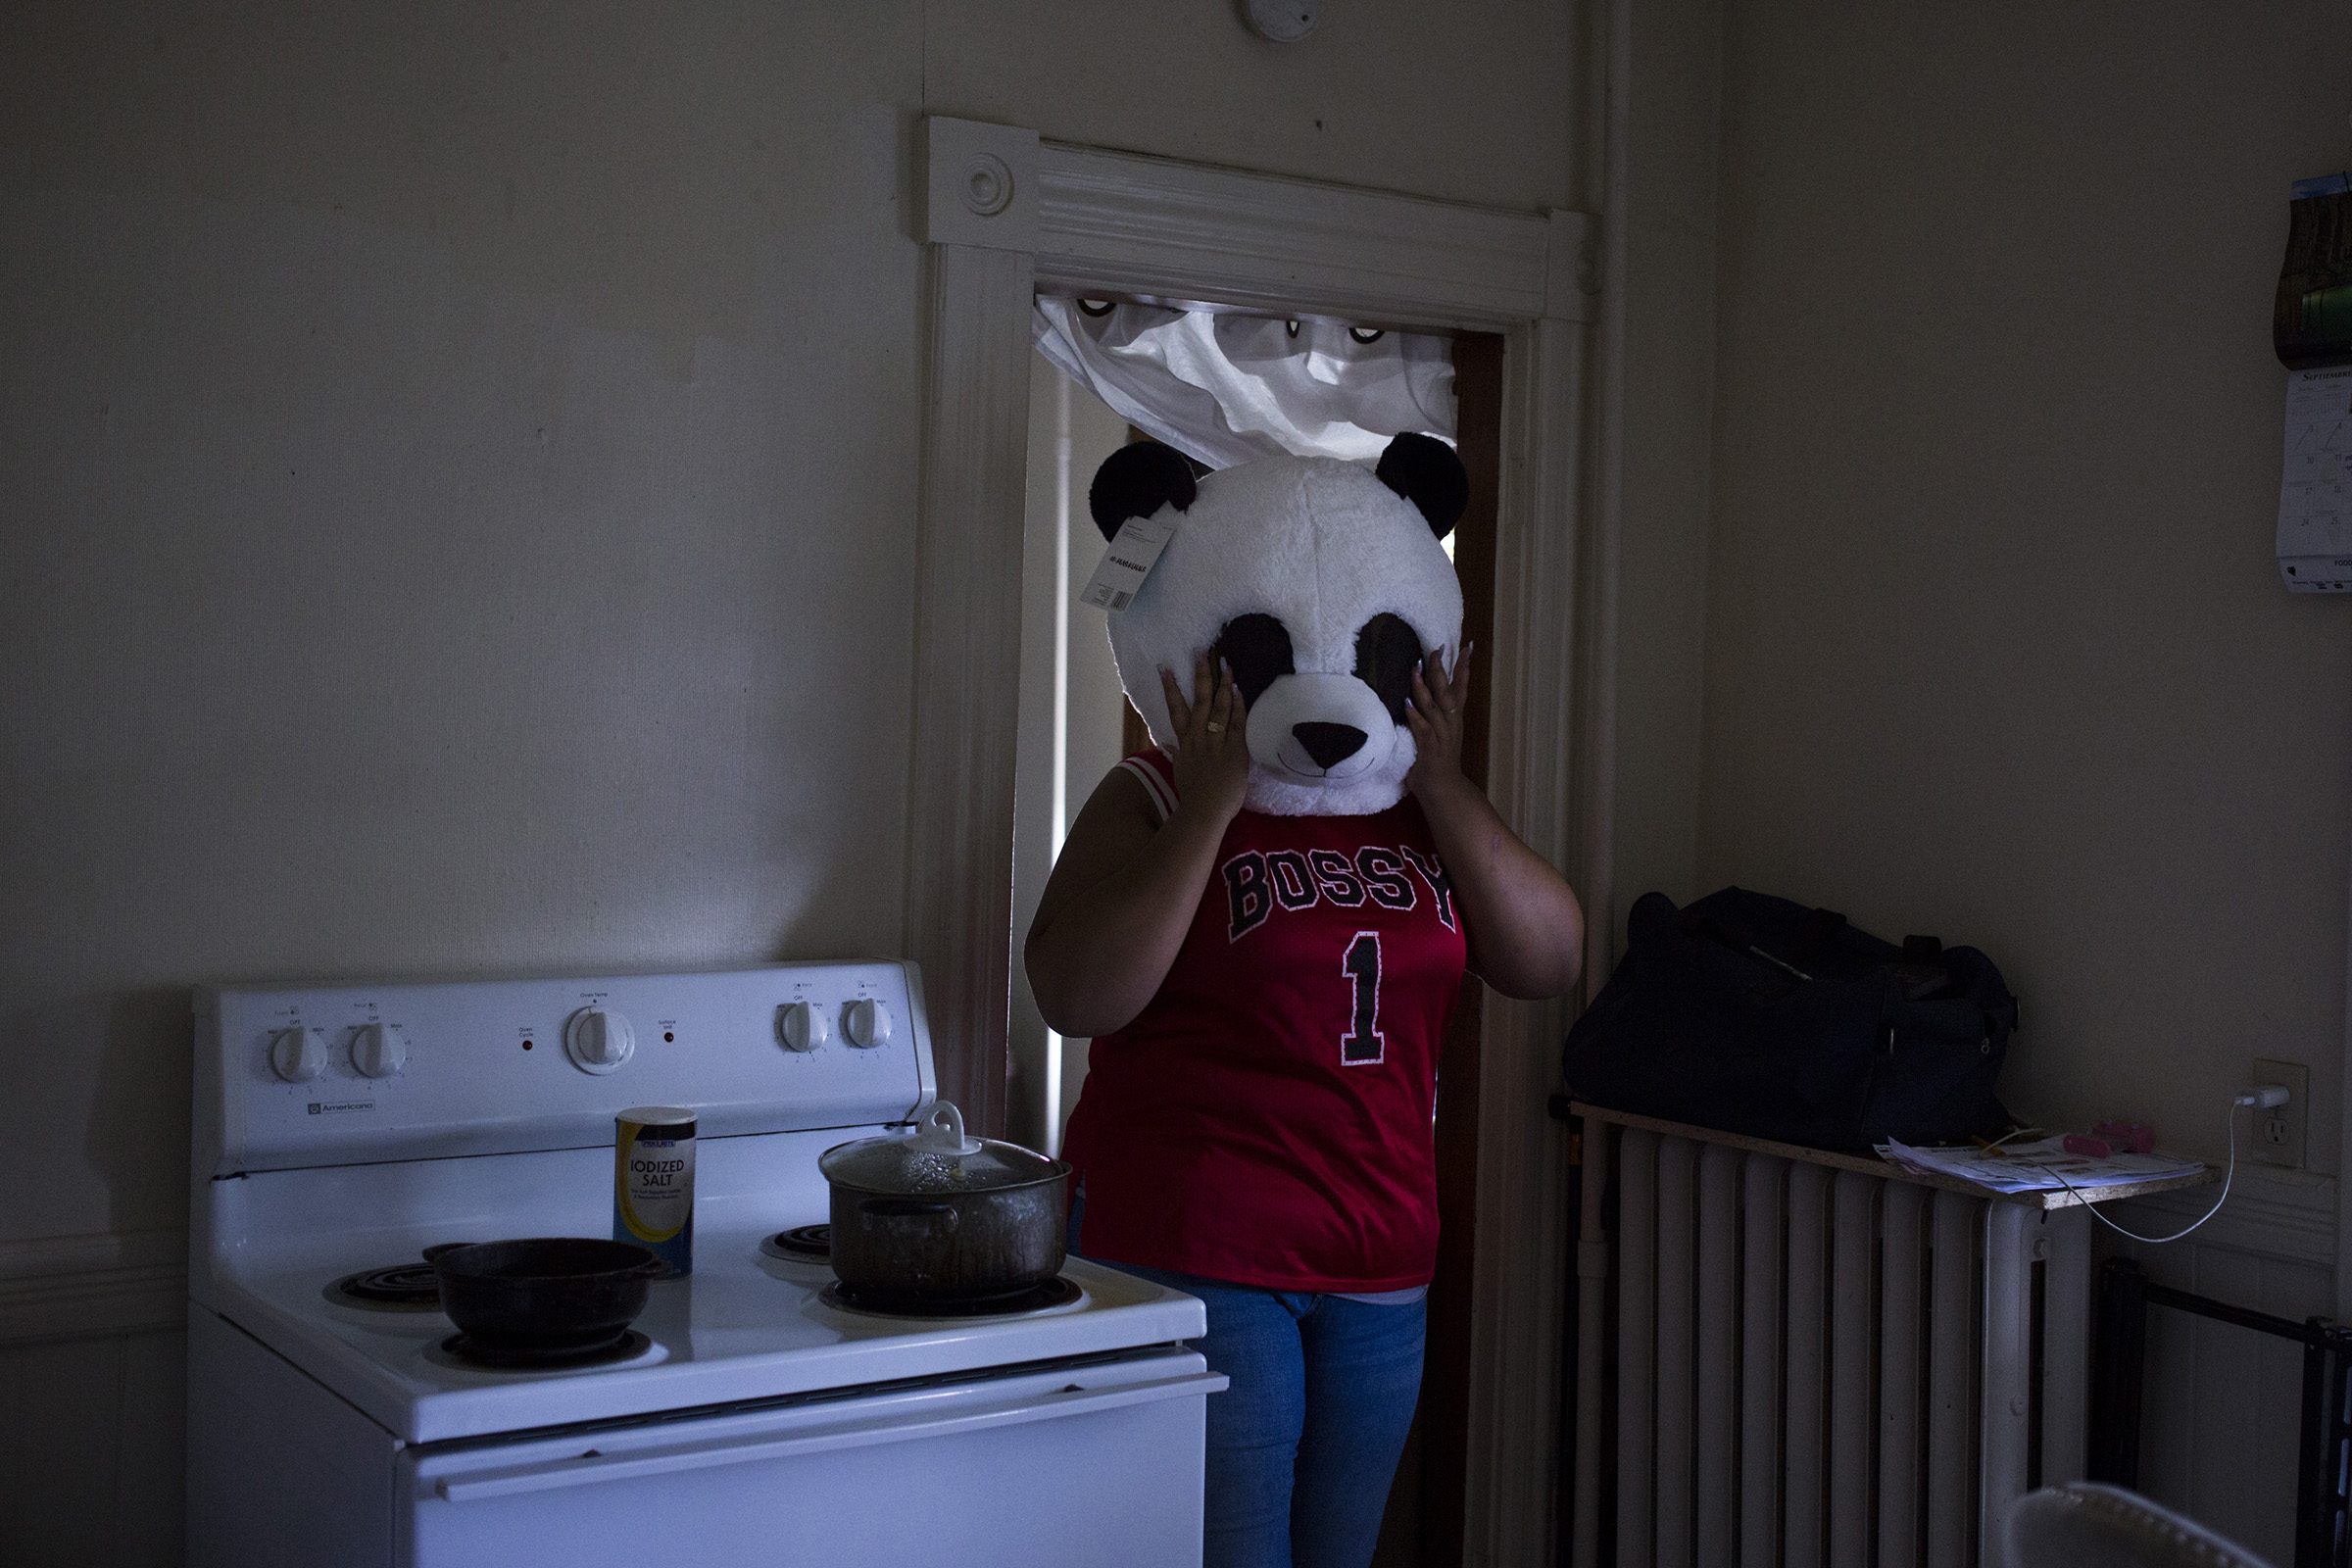 Destiny Montez, 17, shows her panda bear costume in the kitchen of her home in Springfield, Mass., on Saturday, September, 9, 2017. (Photo by Brittany Greeson)